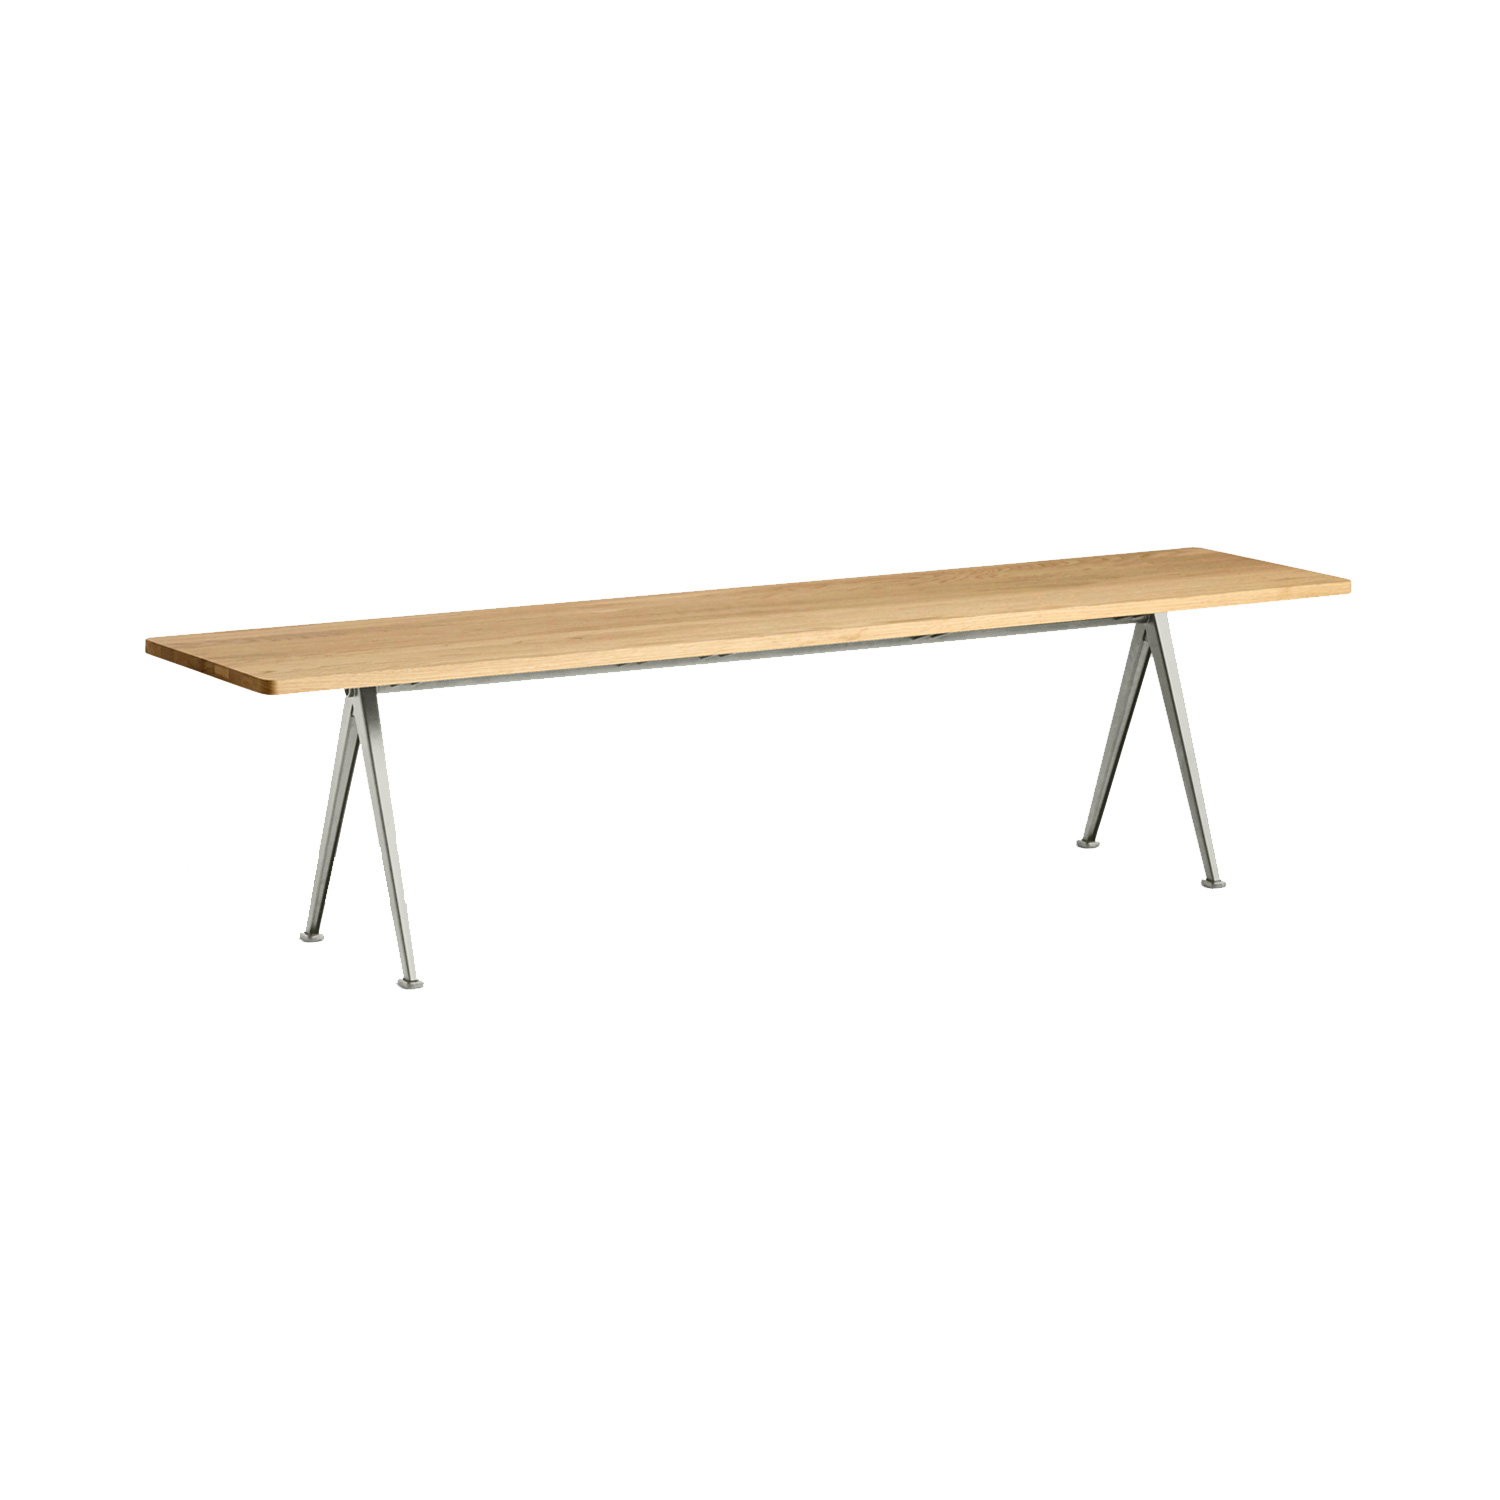 Pyramid bench 12 190x40, beige frame/clear